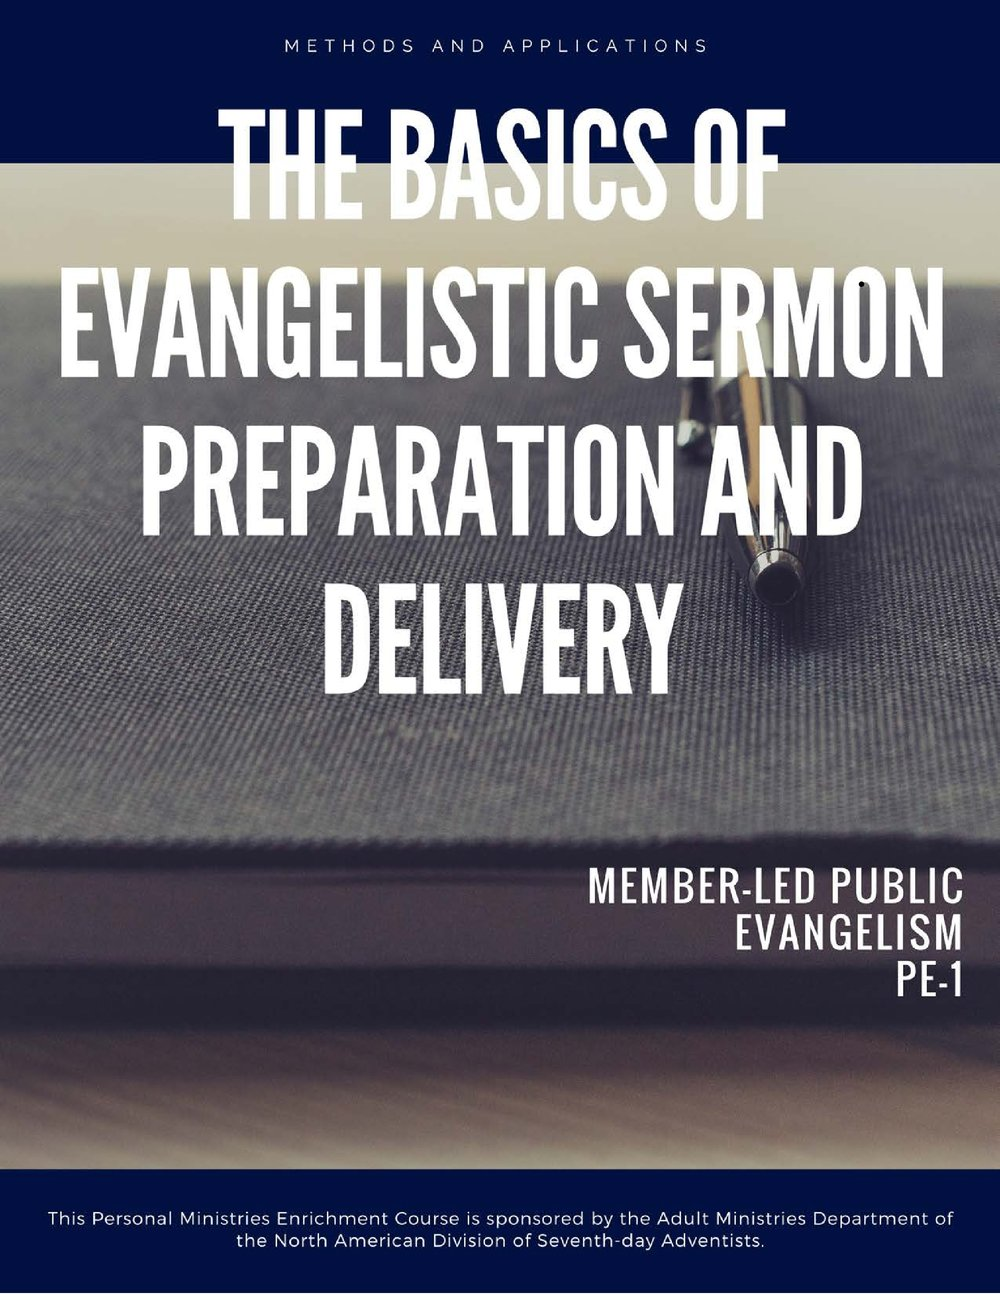 The personal ministries participant will examine and acquire a knowledge and understanding of the basic rules of evangelistic sermon preparation and will be to apply these rules in the development and presentation of evangelistic sermons. - <<Click the cover to view